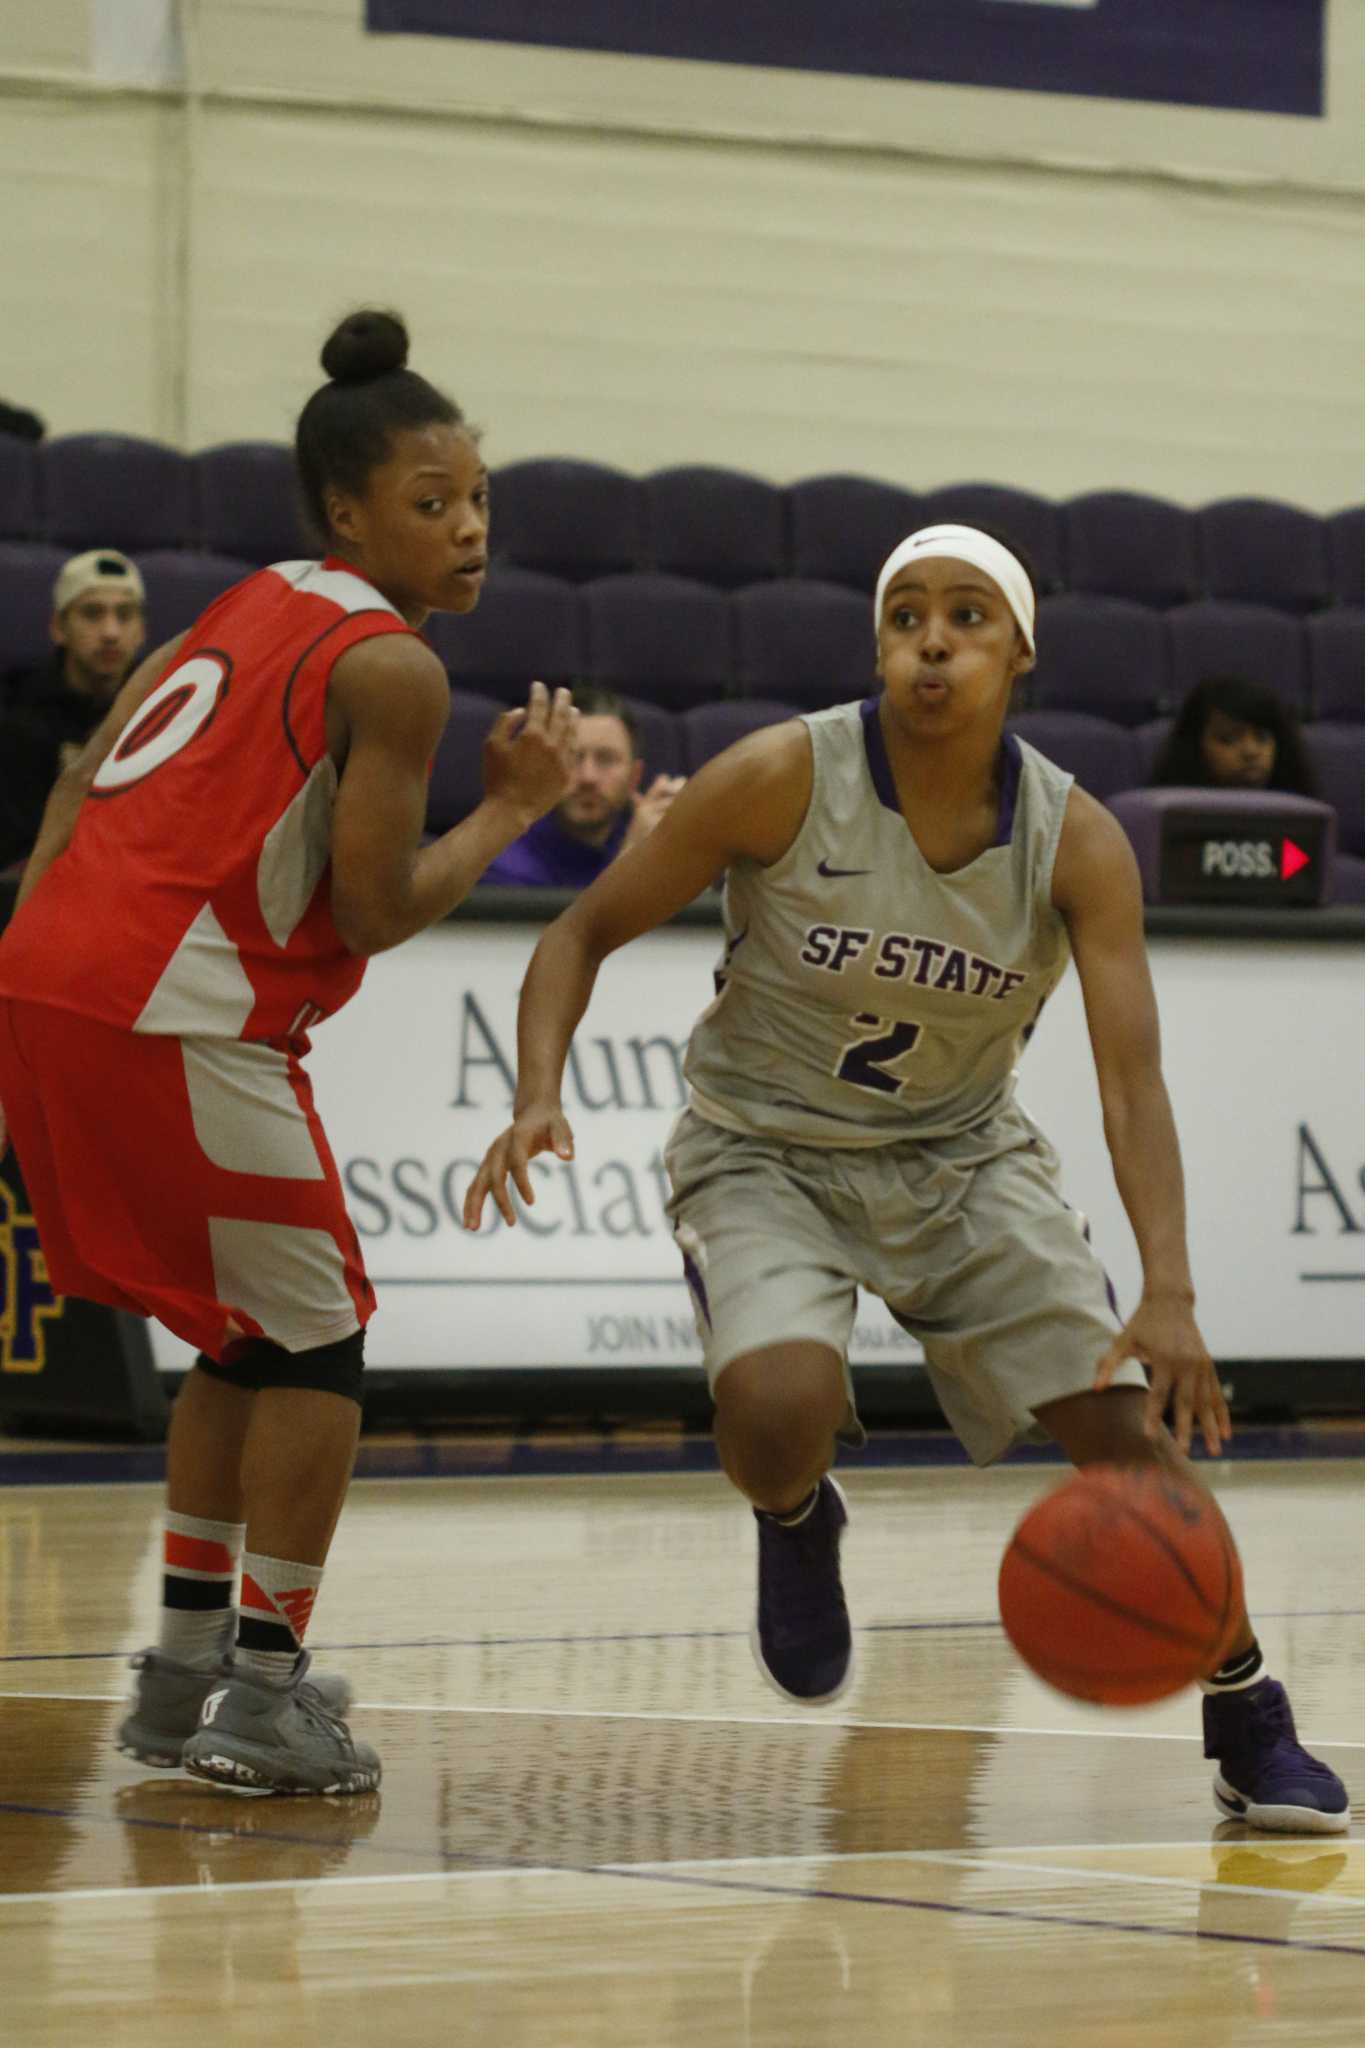 SF State Gators' junior guard Toni Edwards (2) drives the ball down the court against Hawks' senior guard Tiana Burks (0) during the Gators 66-58 win over Holy Names University at the Swamp on Tuesday, Nov. 15, 2016. (Connor Hunt/Xpress)